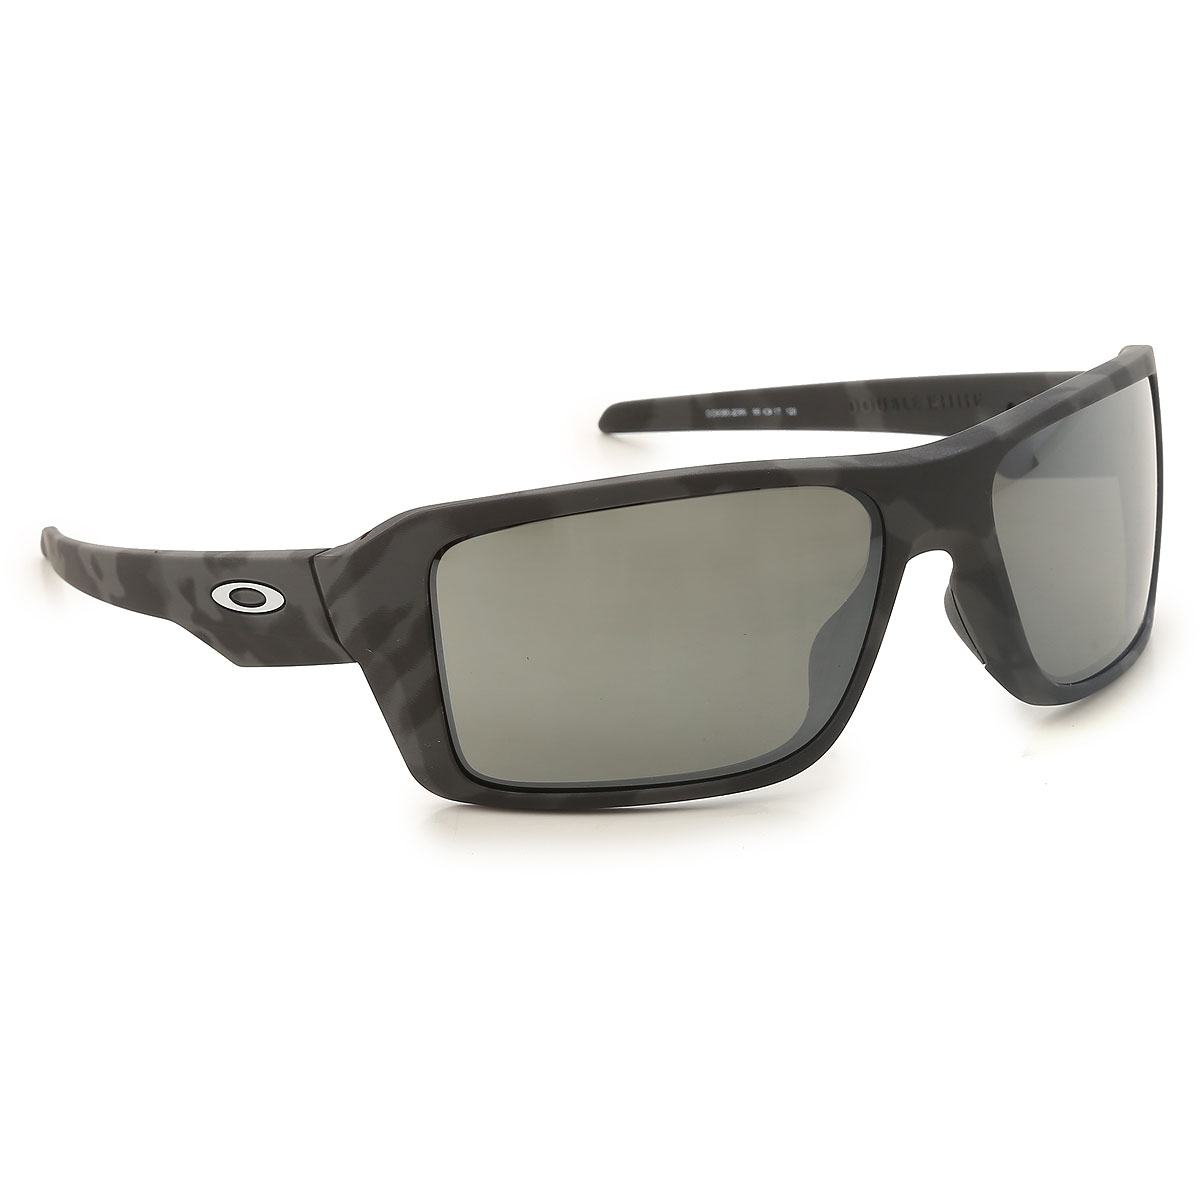 Image of Oakley Sunglasses On Sale, Black Camouflage, 2017